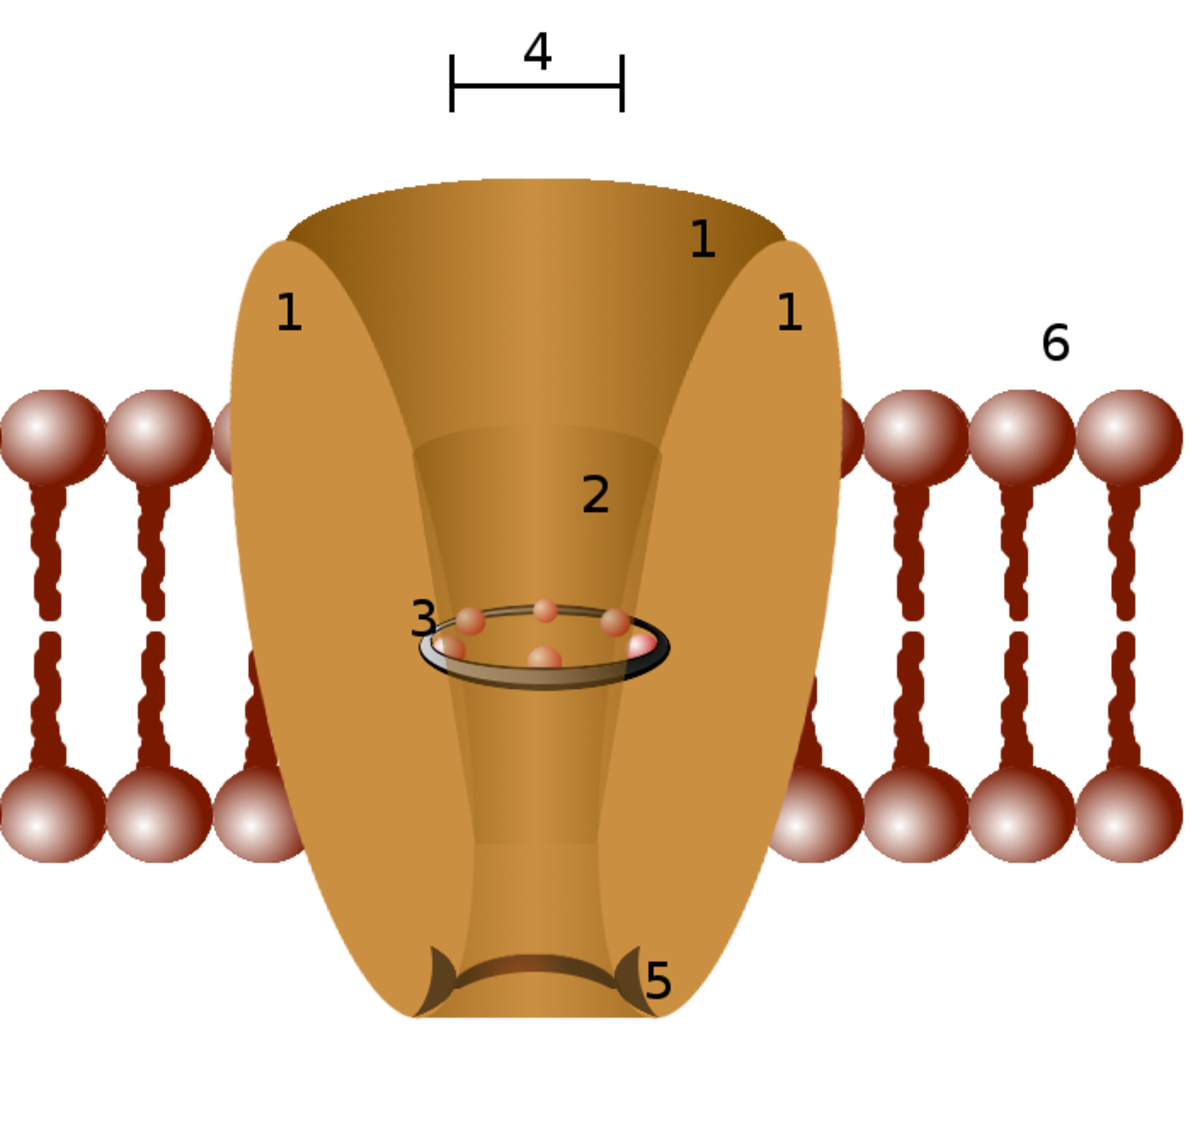 Diagram of an Ion Channel: 1 - channel domains (typically four per channel), 2 - outer vestibule, 3 - selectivity filter, 4 - diameter of selectivity filter, 5 - phosphorylation site, 6 - cell membrane.